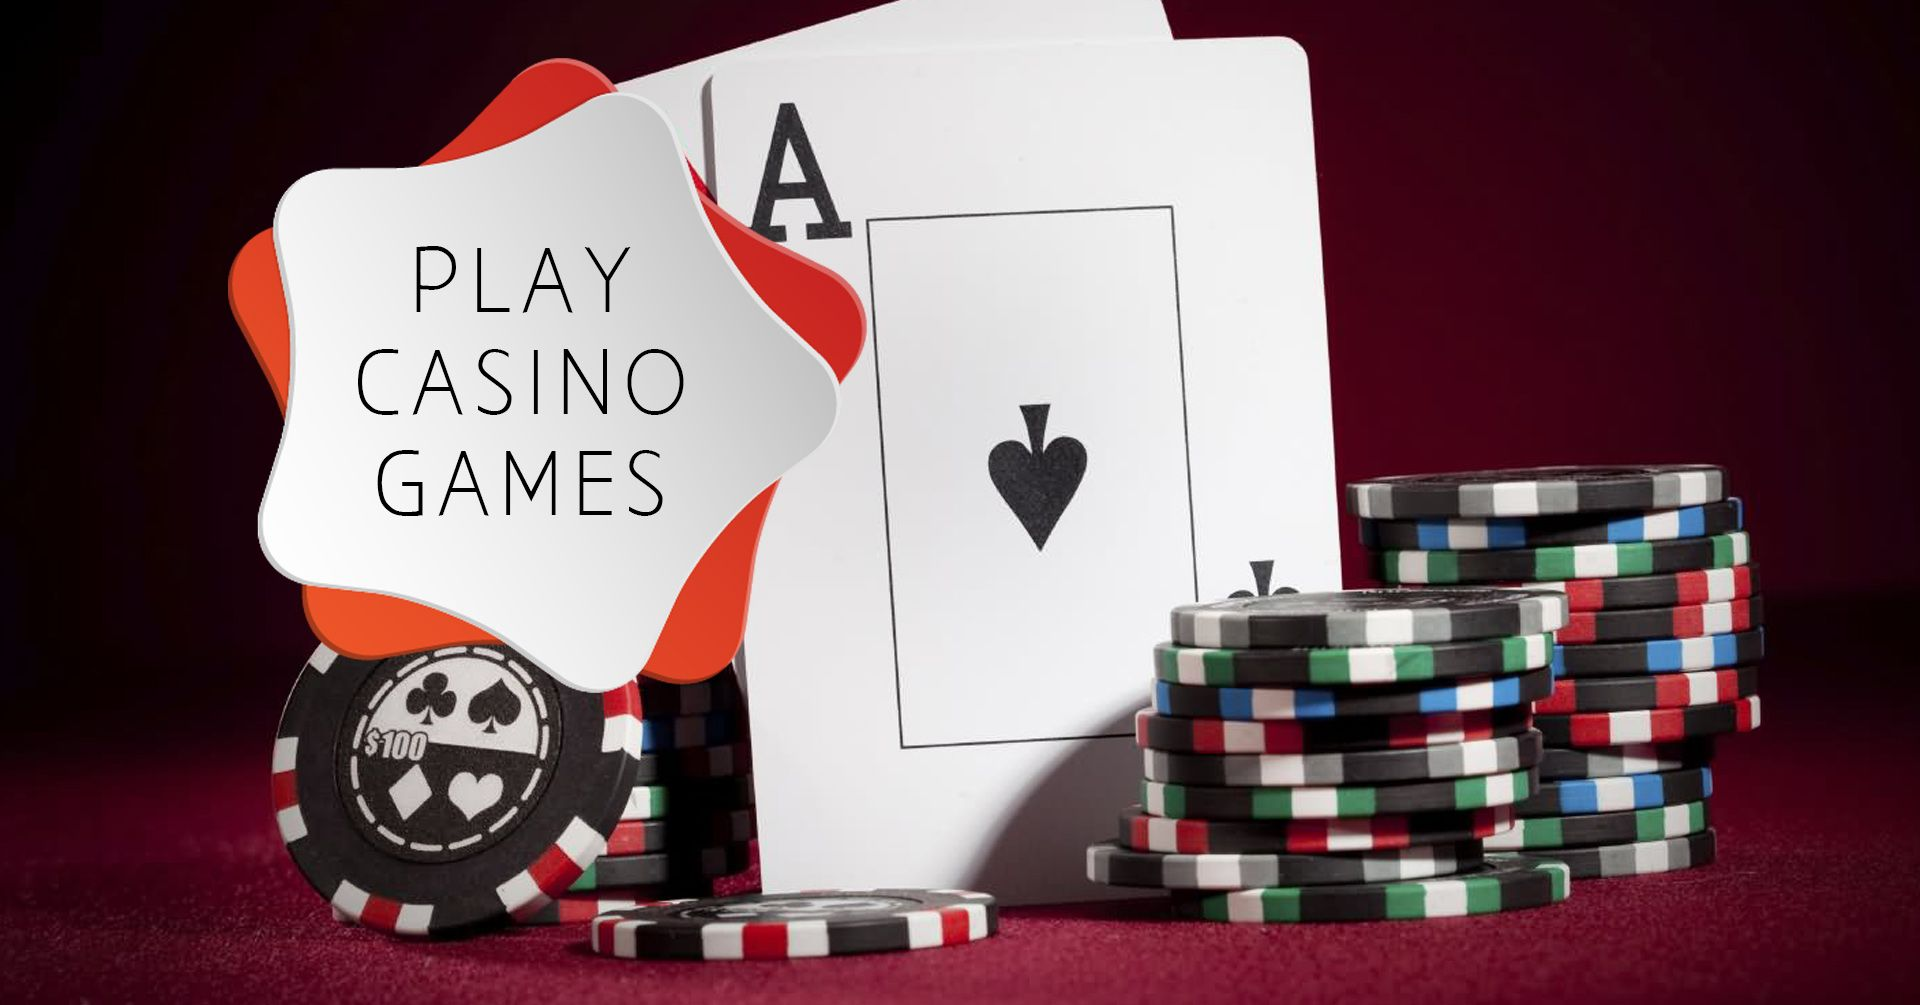 Many have tried, but only a few have succeeded. Playing poker online isn't as easy as it sounds. And although some were just lucky to succeed, others invested considerable amounts of energy and time into their efforts. But the good news is that it's possible and real. Earning money by playing casino games was not …